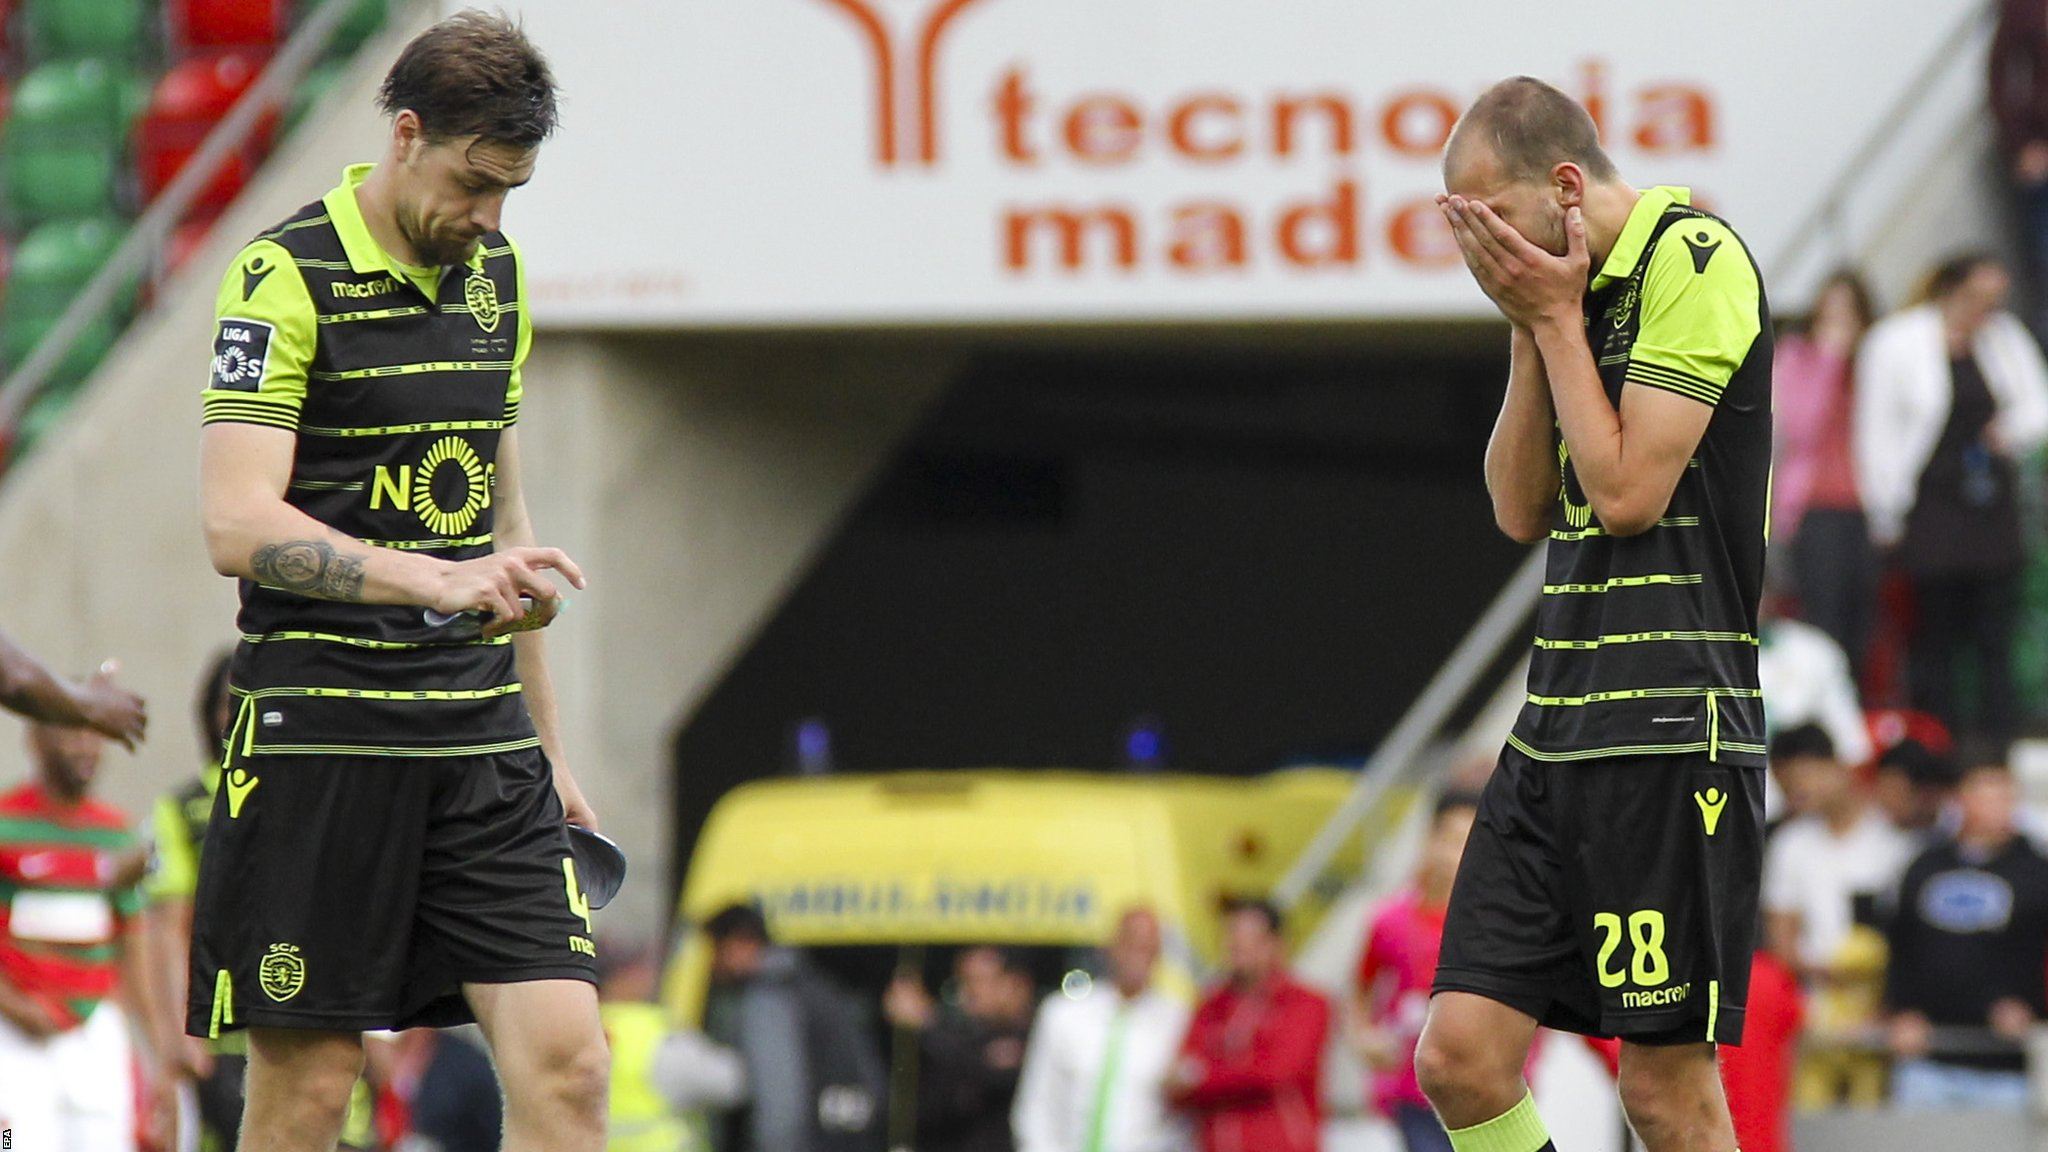 Sporting Lisbon in shock cup final defeat, five days after players were attacked